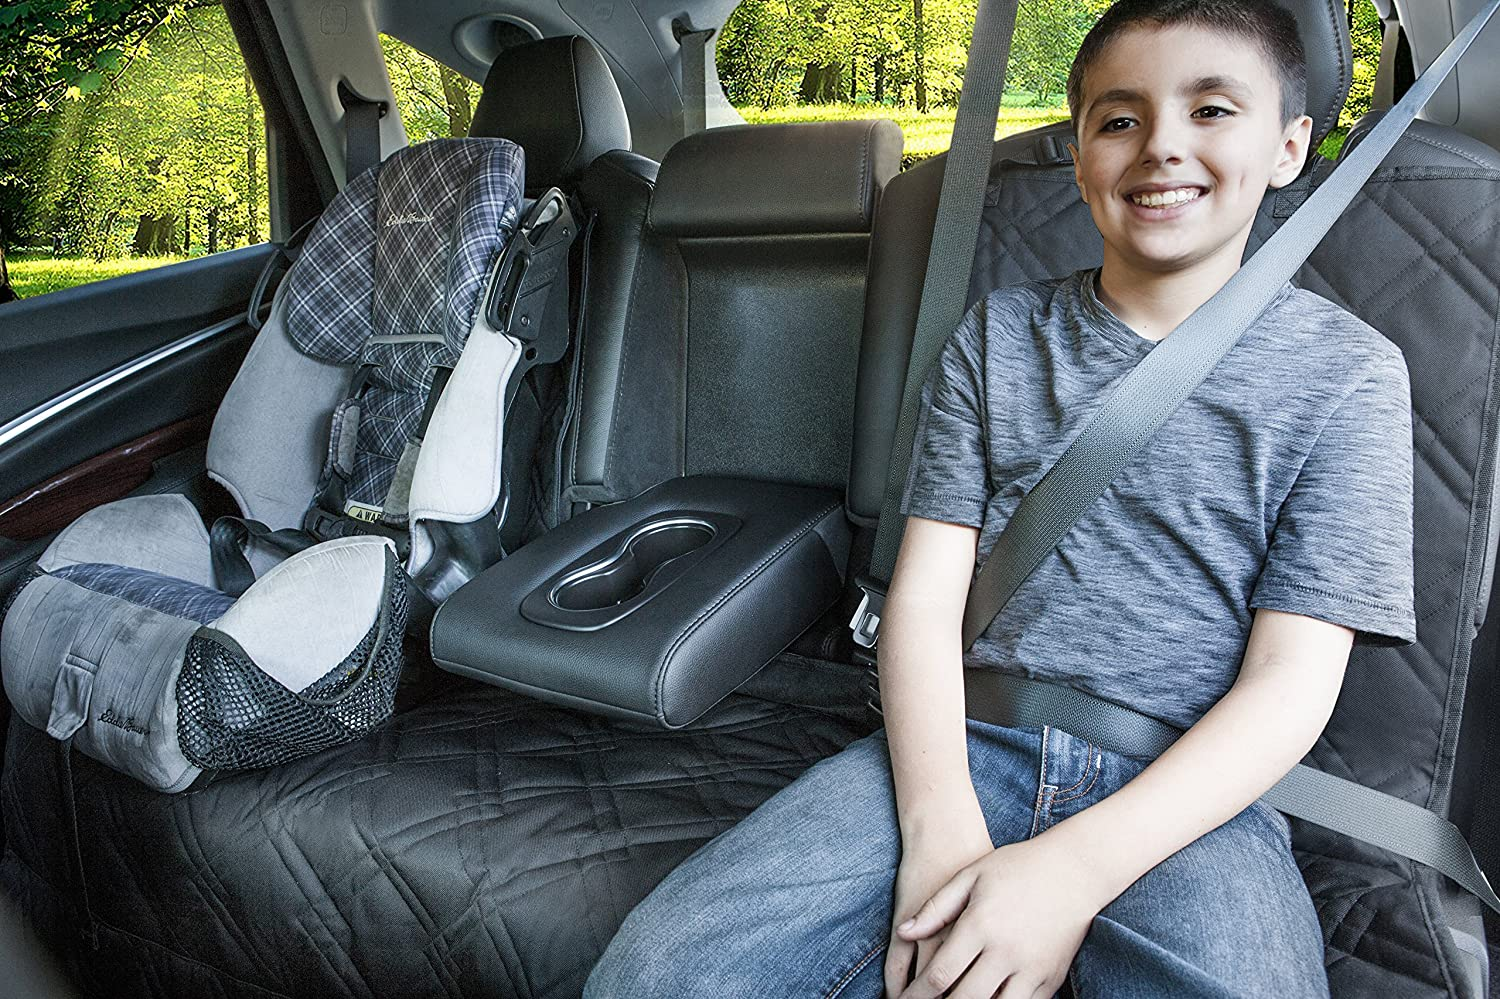 Rumbi Baby Backseat Protector for Any Car, Truck and SUV. Made of Waterproof, Non-Slip Material with Removable Zipper